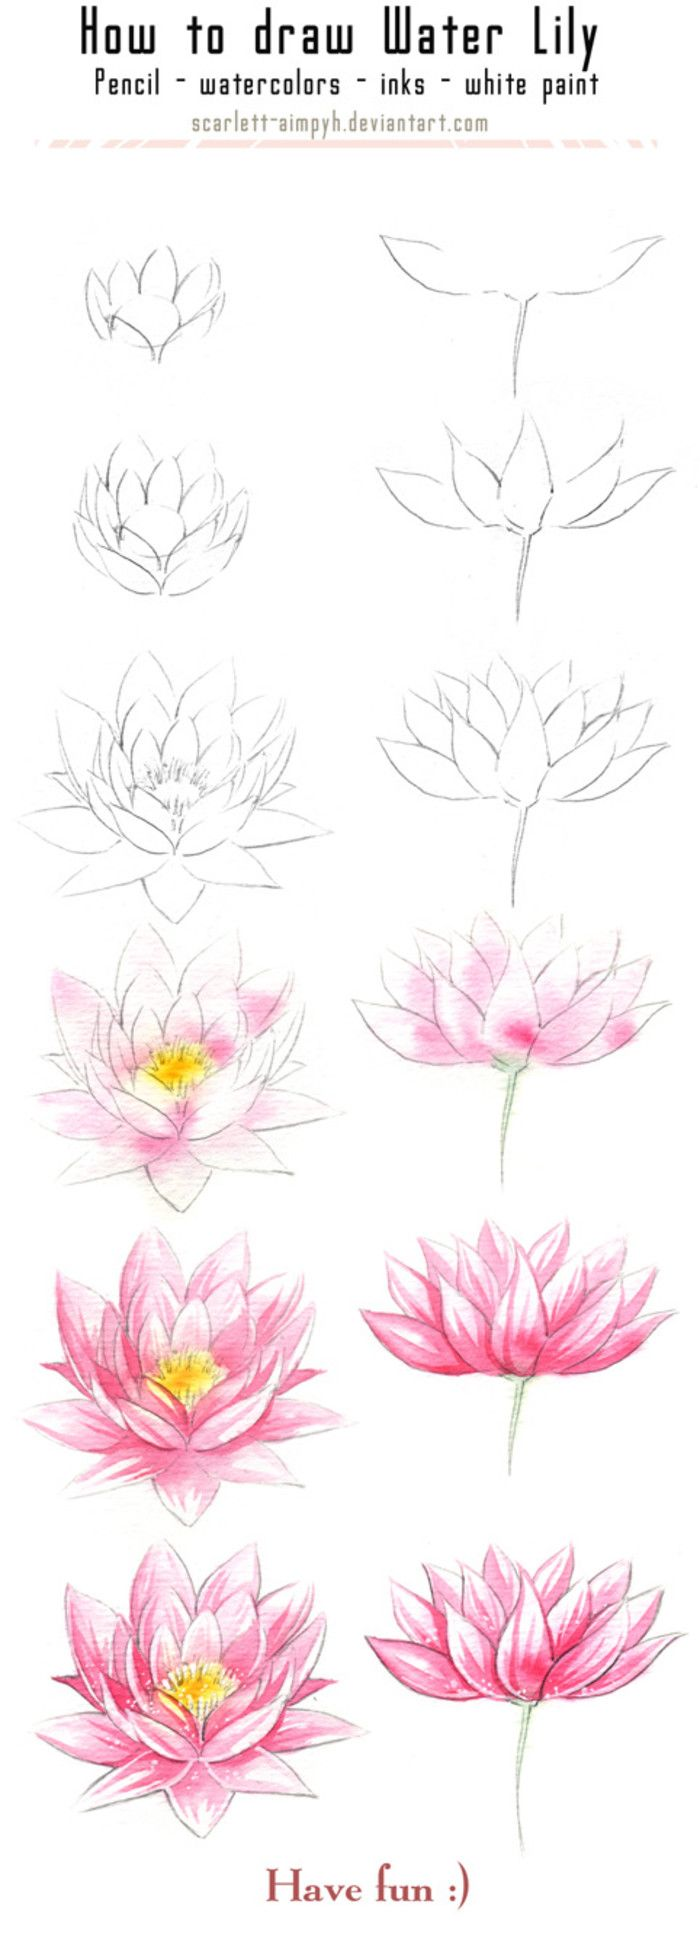 207 best draw images on pinterest doodles drawing ideas and easy draw pattern 131 how to draw and paint waterlily by scarlett aimpyh on deviantart izmirmasajfo Gallery